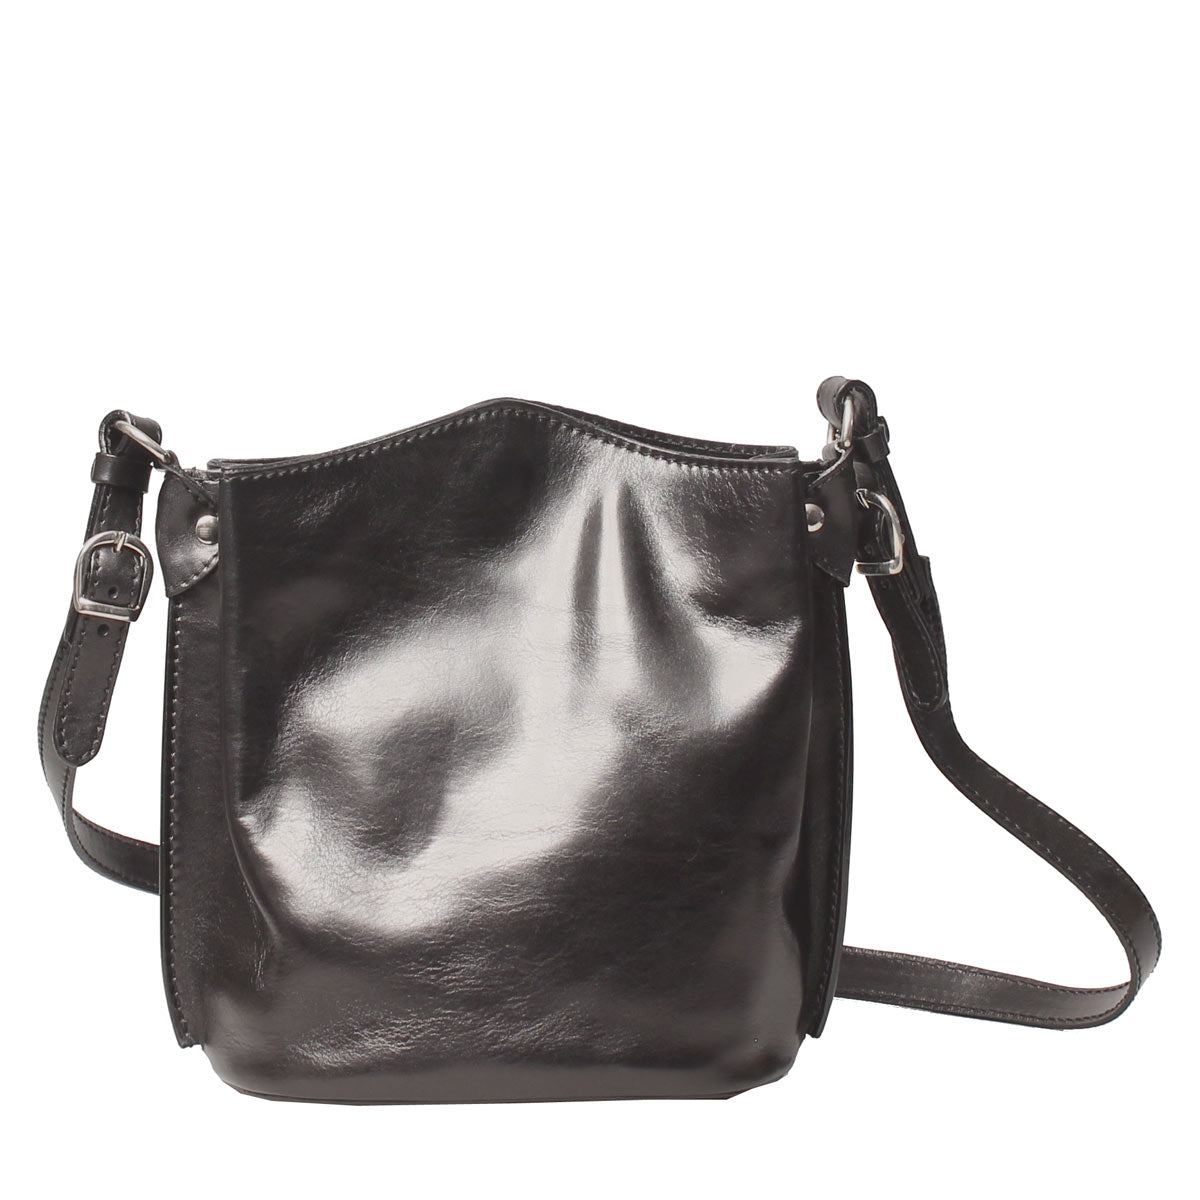 Image 1 of the 'Palermo' Women's Black Leather Bucket Bag